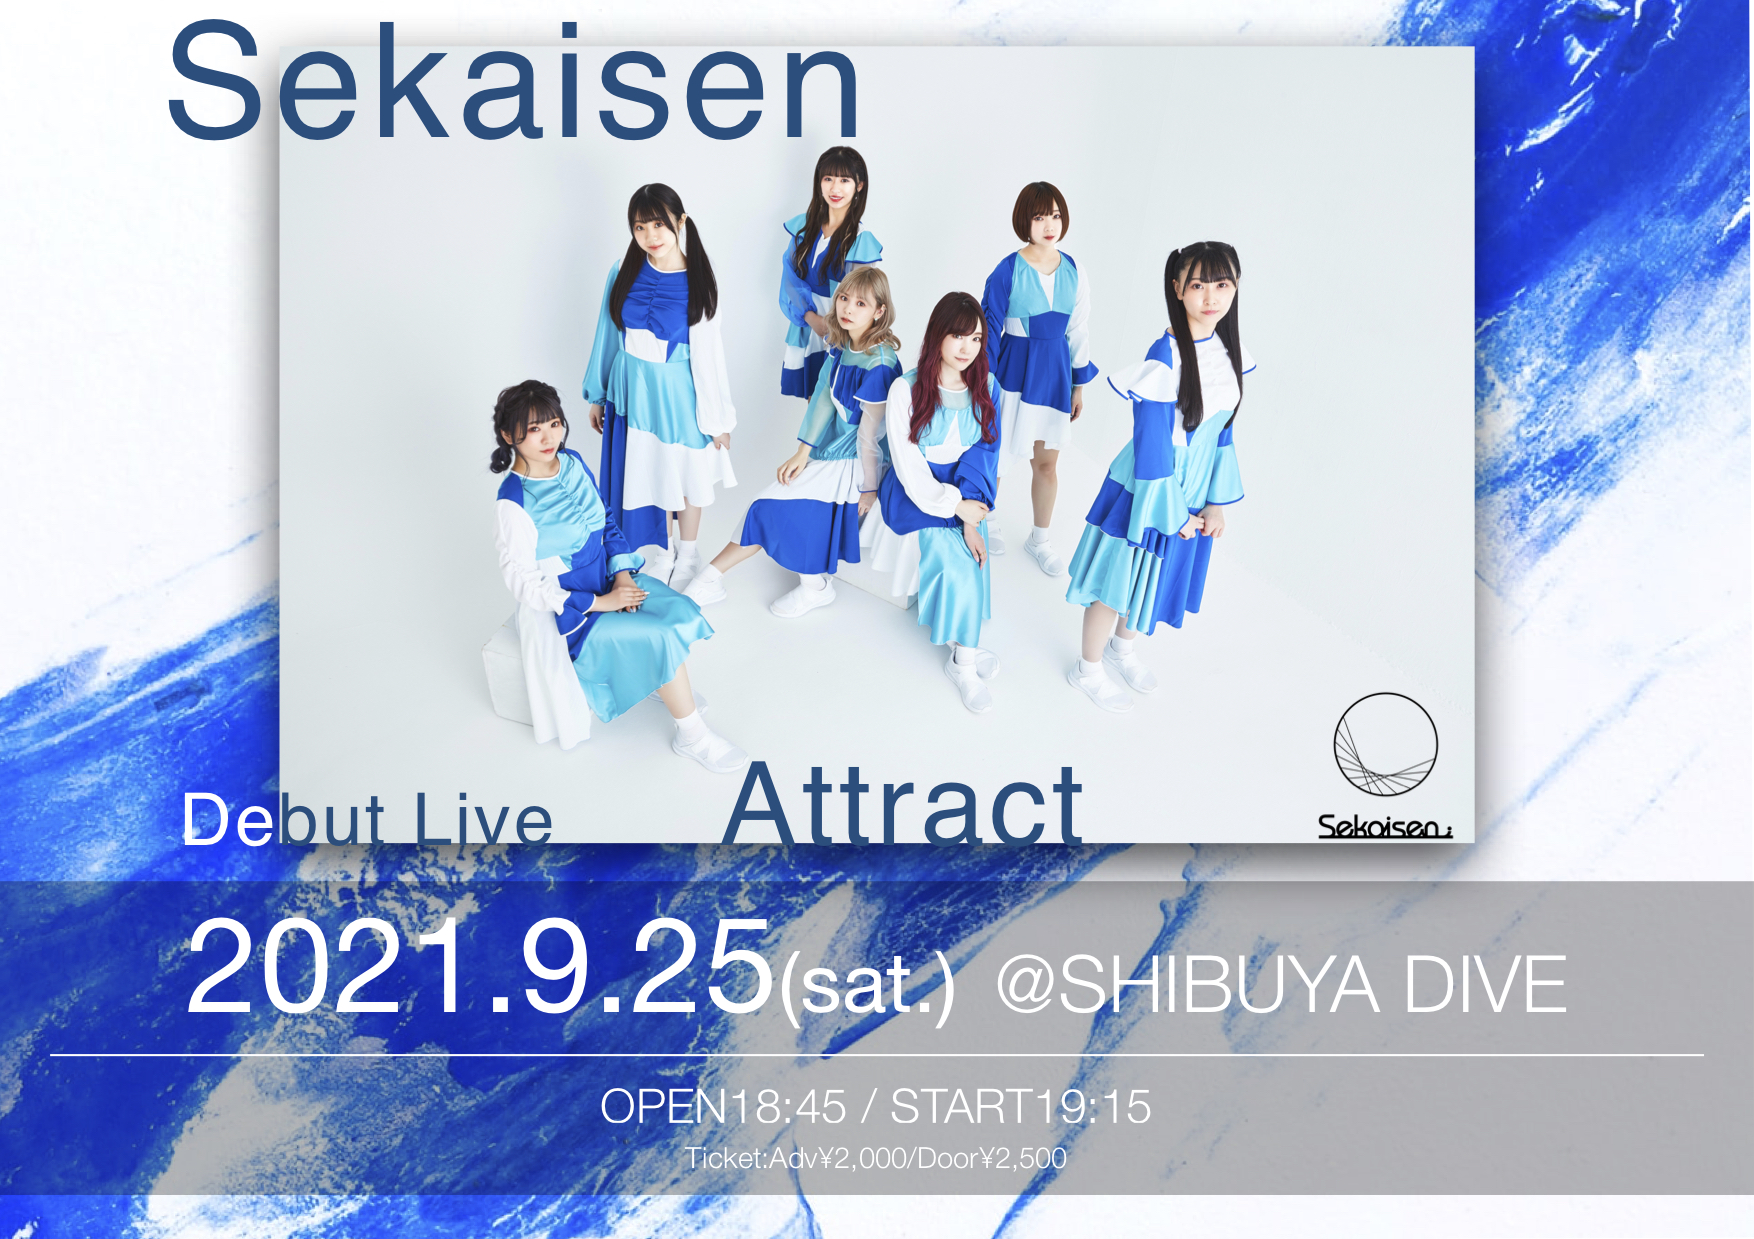 Sekaisen Debut Live 『Attract』